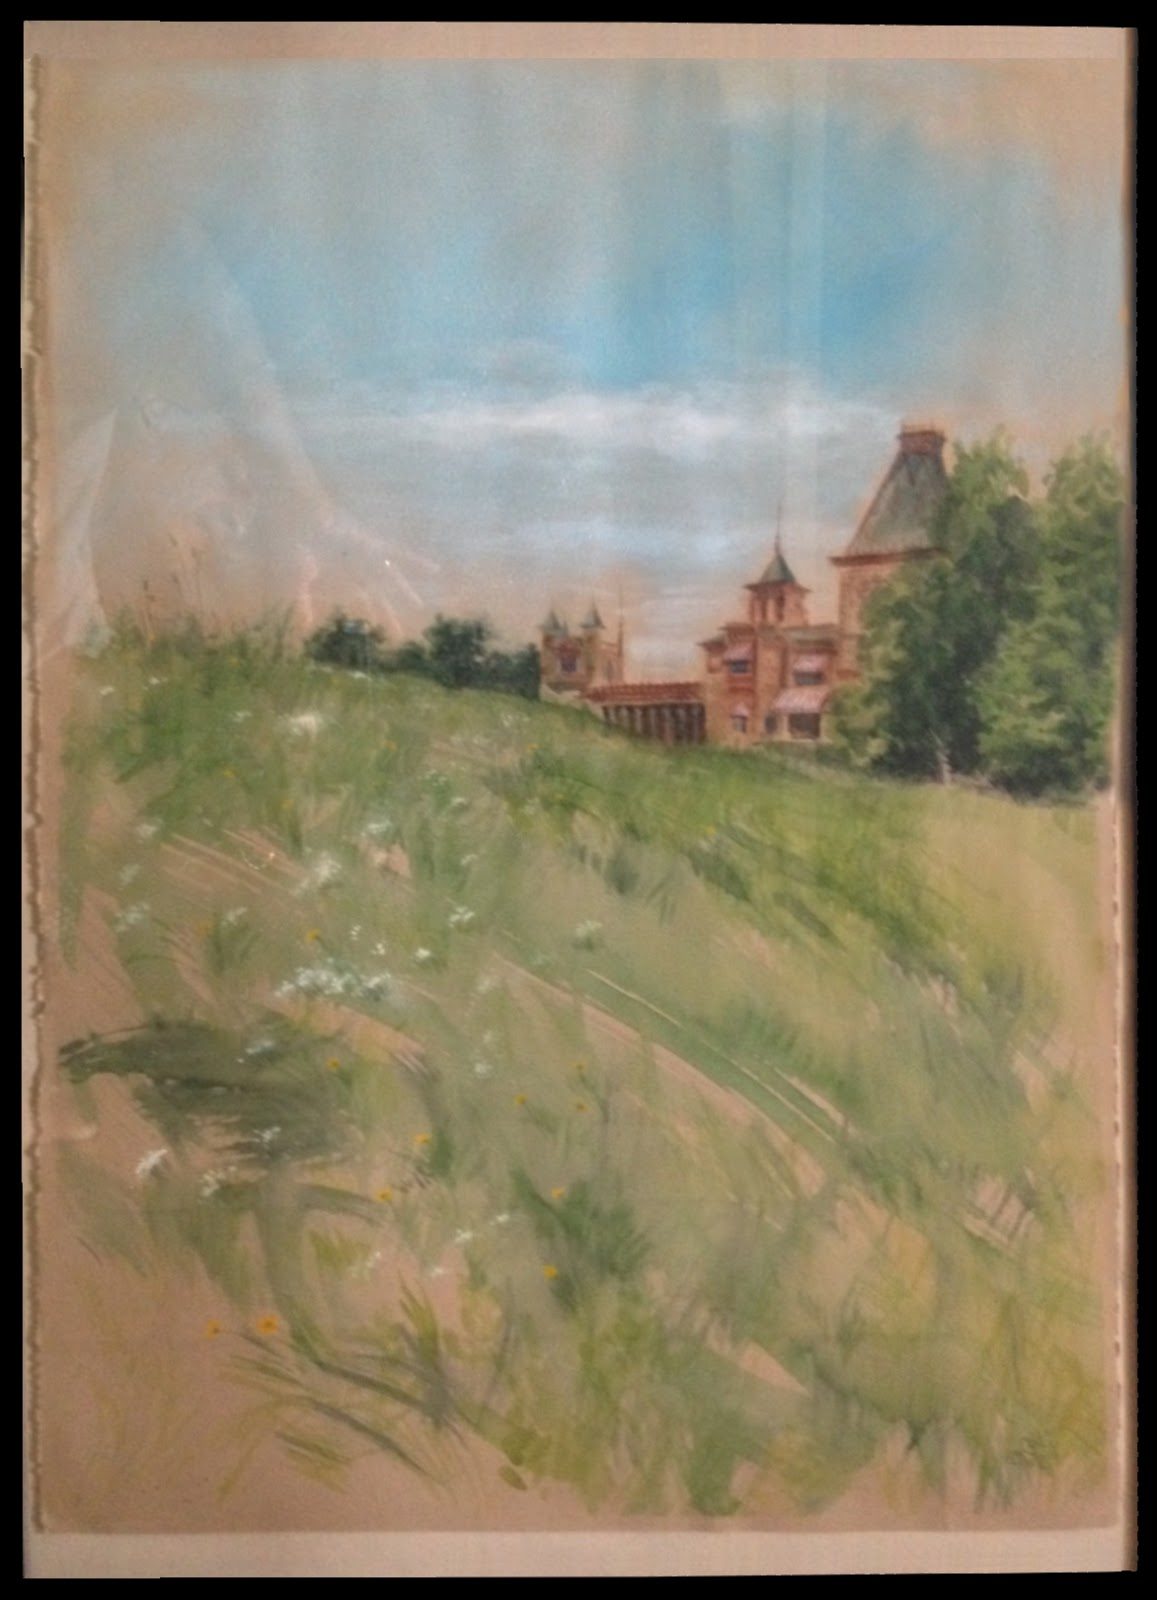 Watercolor artists directory wiki - That Is Very Disappointing For The Artist Who Spent So Many Hours In The Heat Painting Their Masterpiece See Post Below For More About The Olana Plein Air